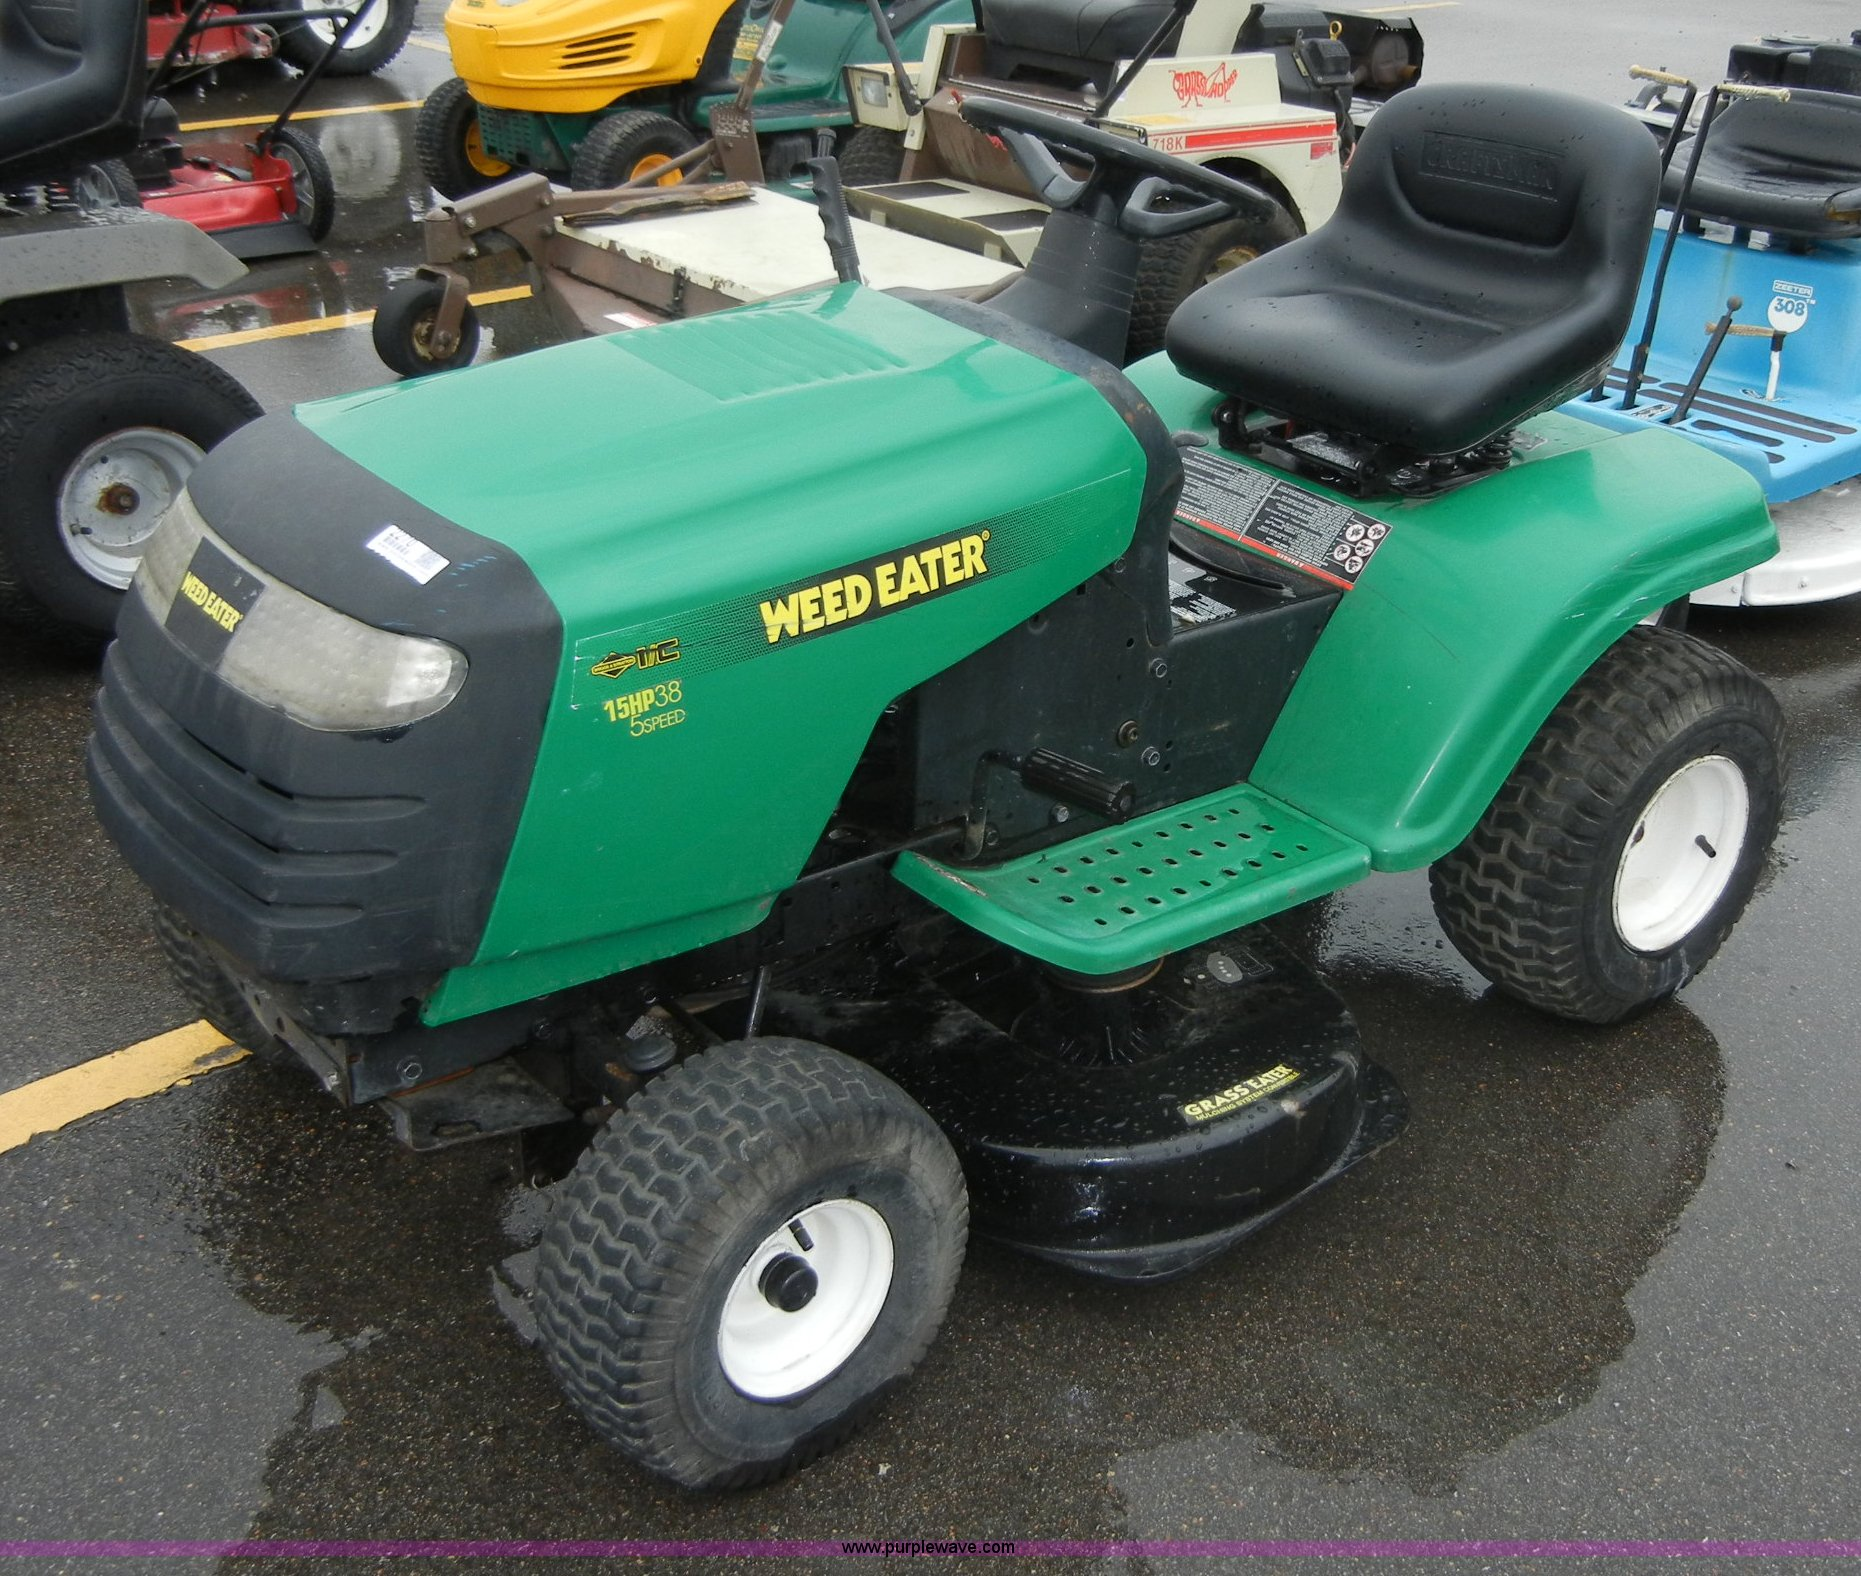 weed eater poulan riding lawn mower item 2270 sold! wedn weed eater riding mower at Weed Eater Rider Mower